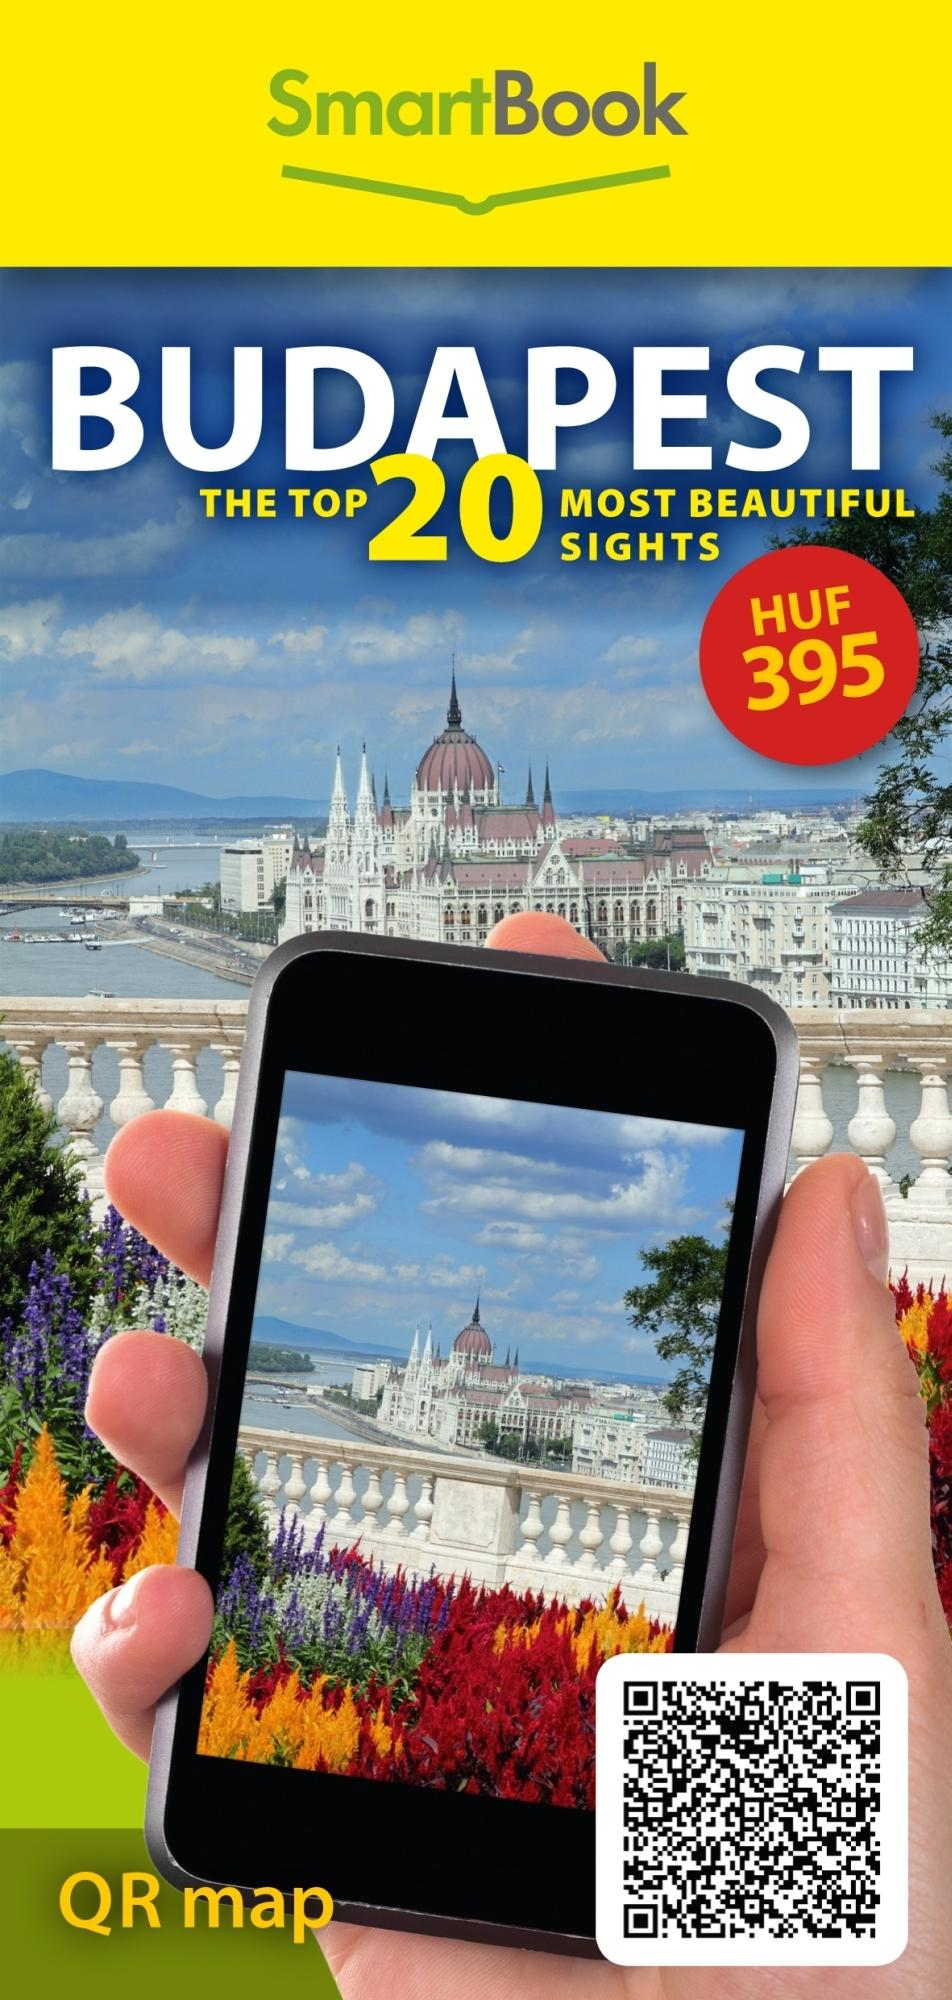 BUDAPEST - THE TOP 20 MOST BEAUTIFUL SIGHTS - SMARTBOOK QR MAP